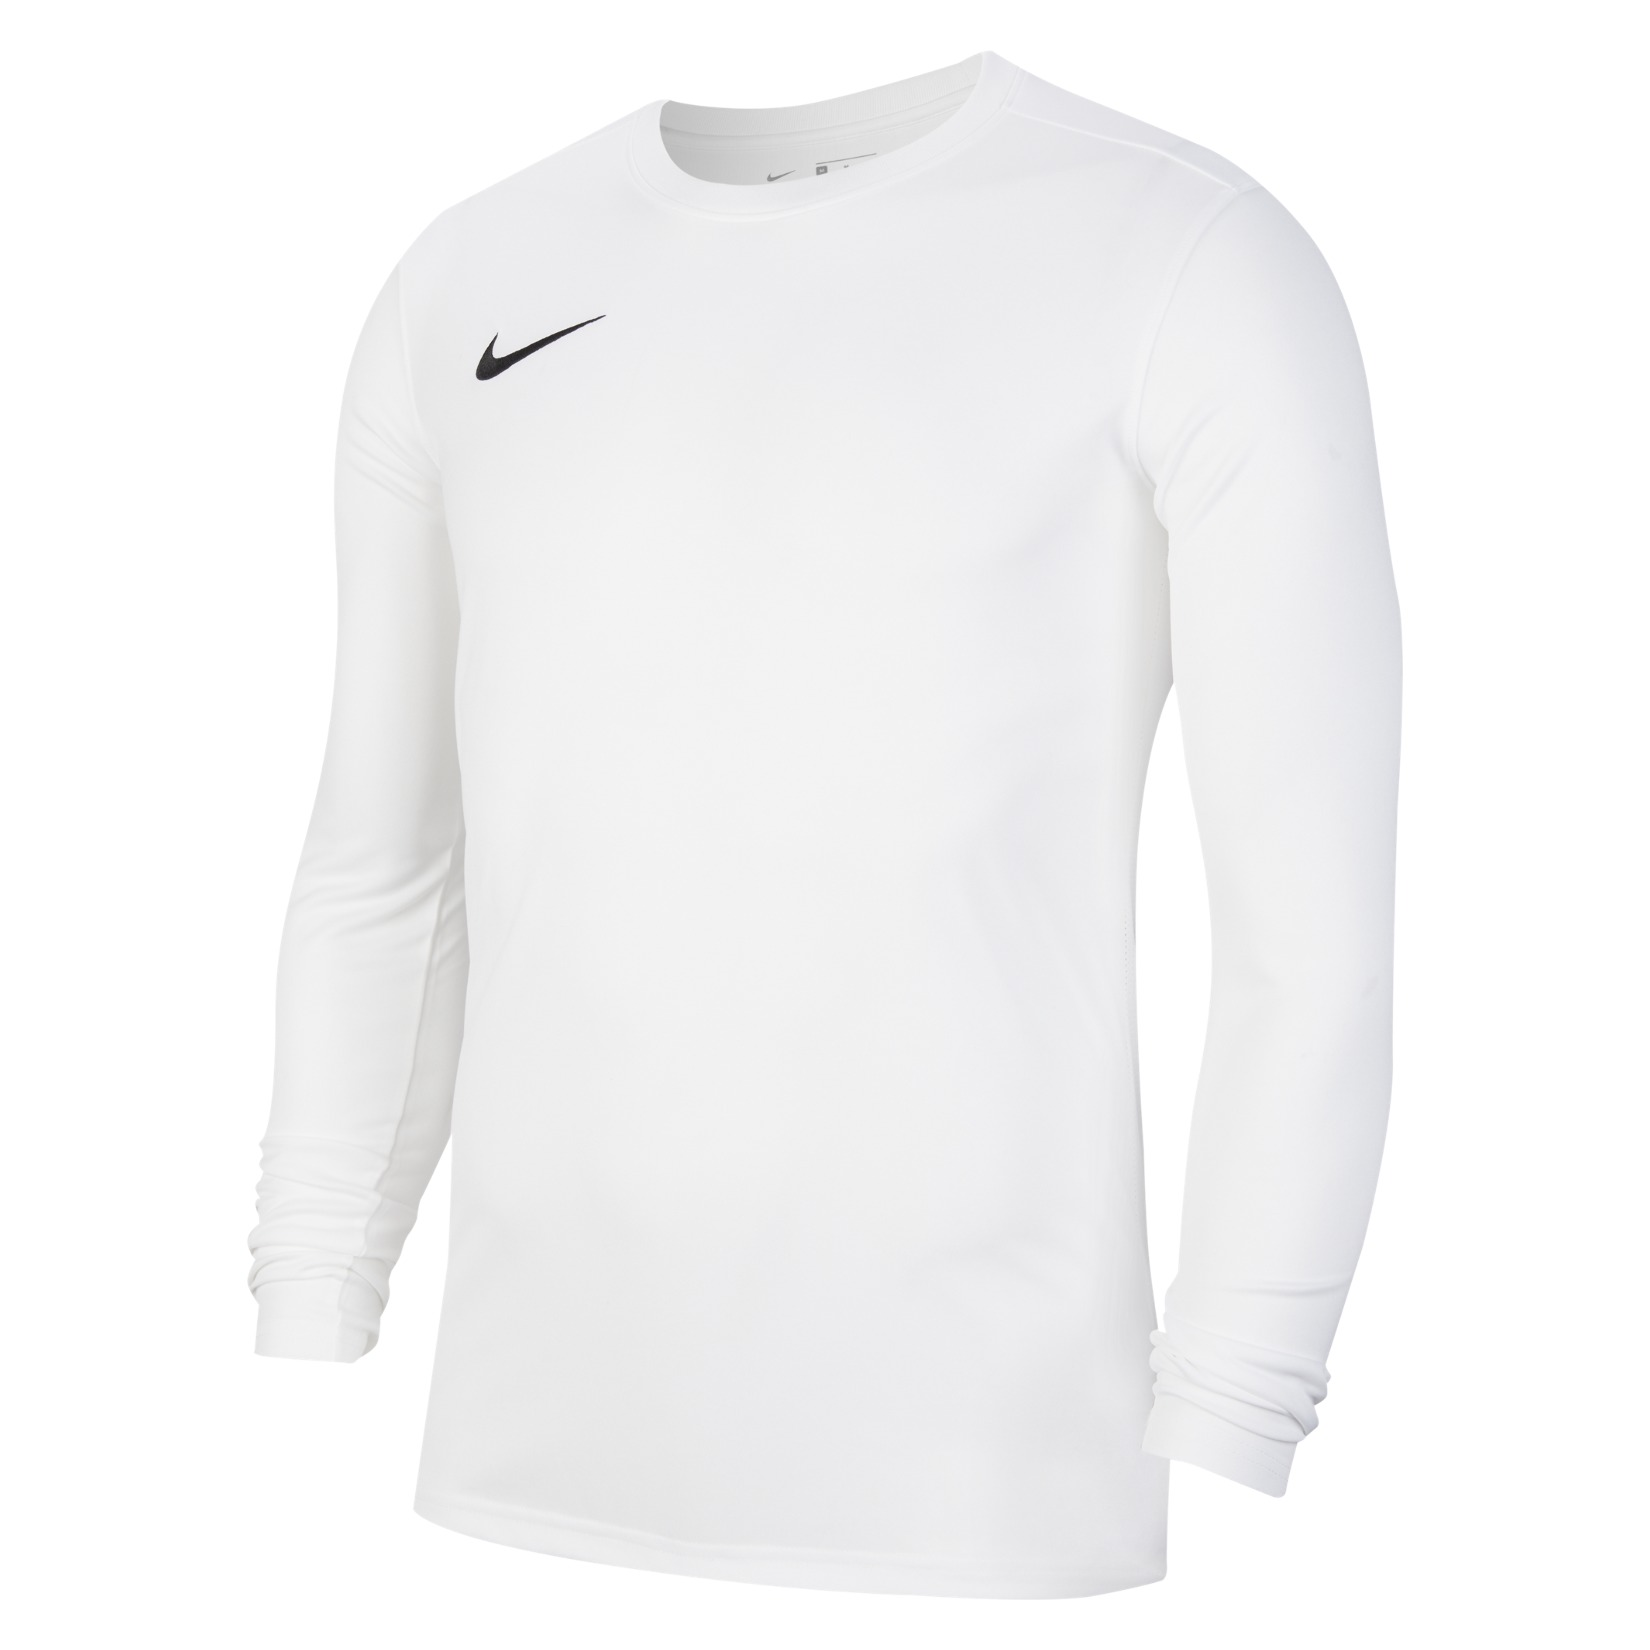 Nike Park VII Dri-FIT Long Sleeve Football Shirt